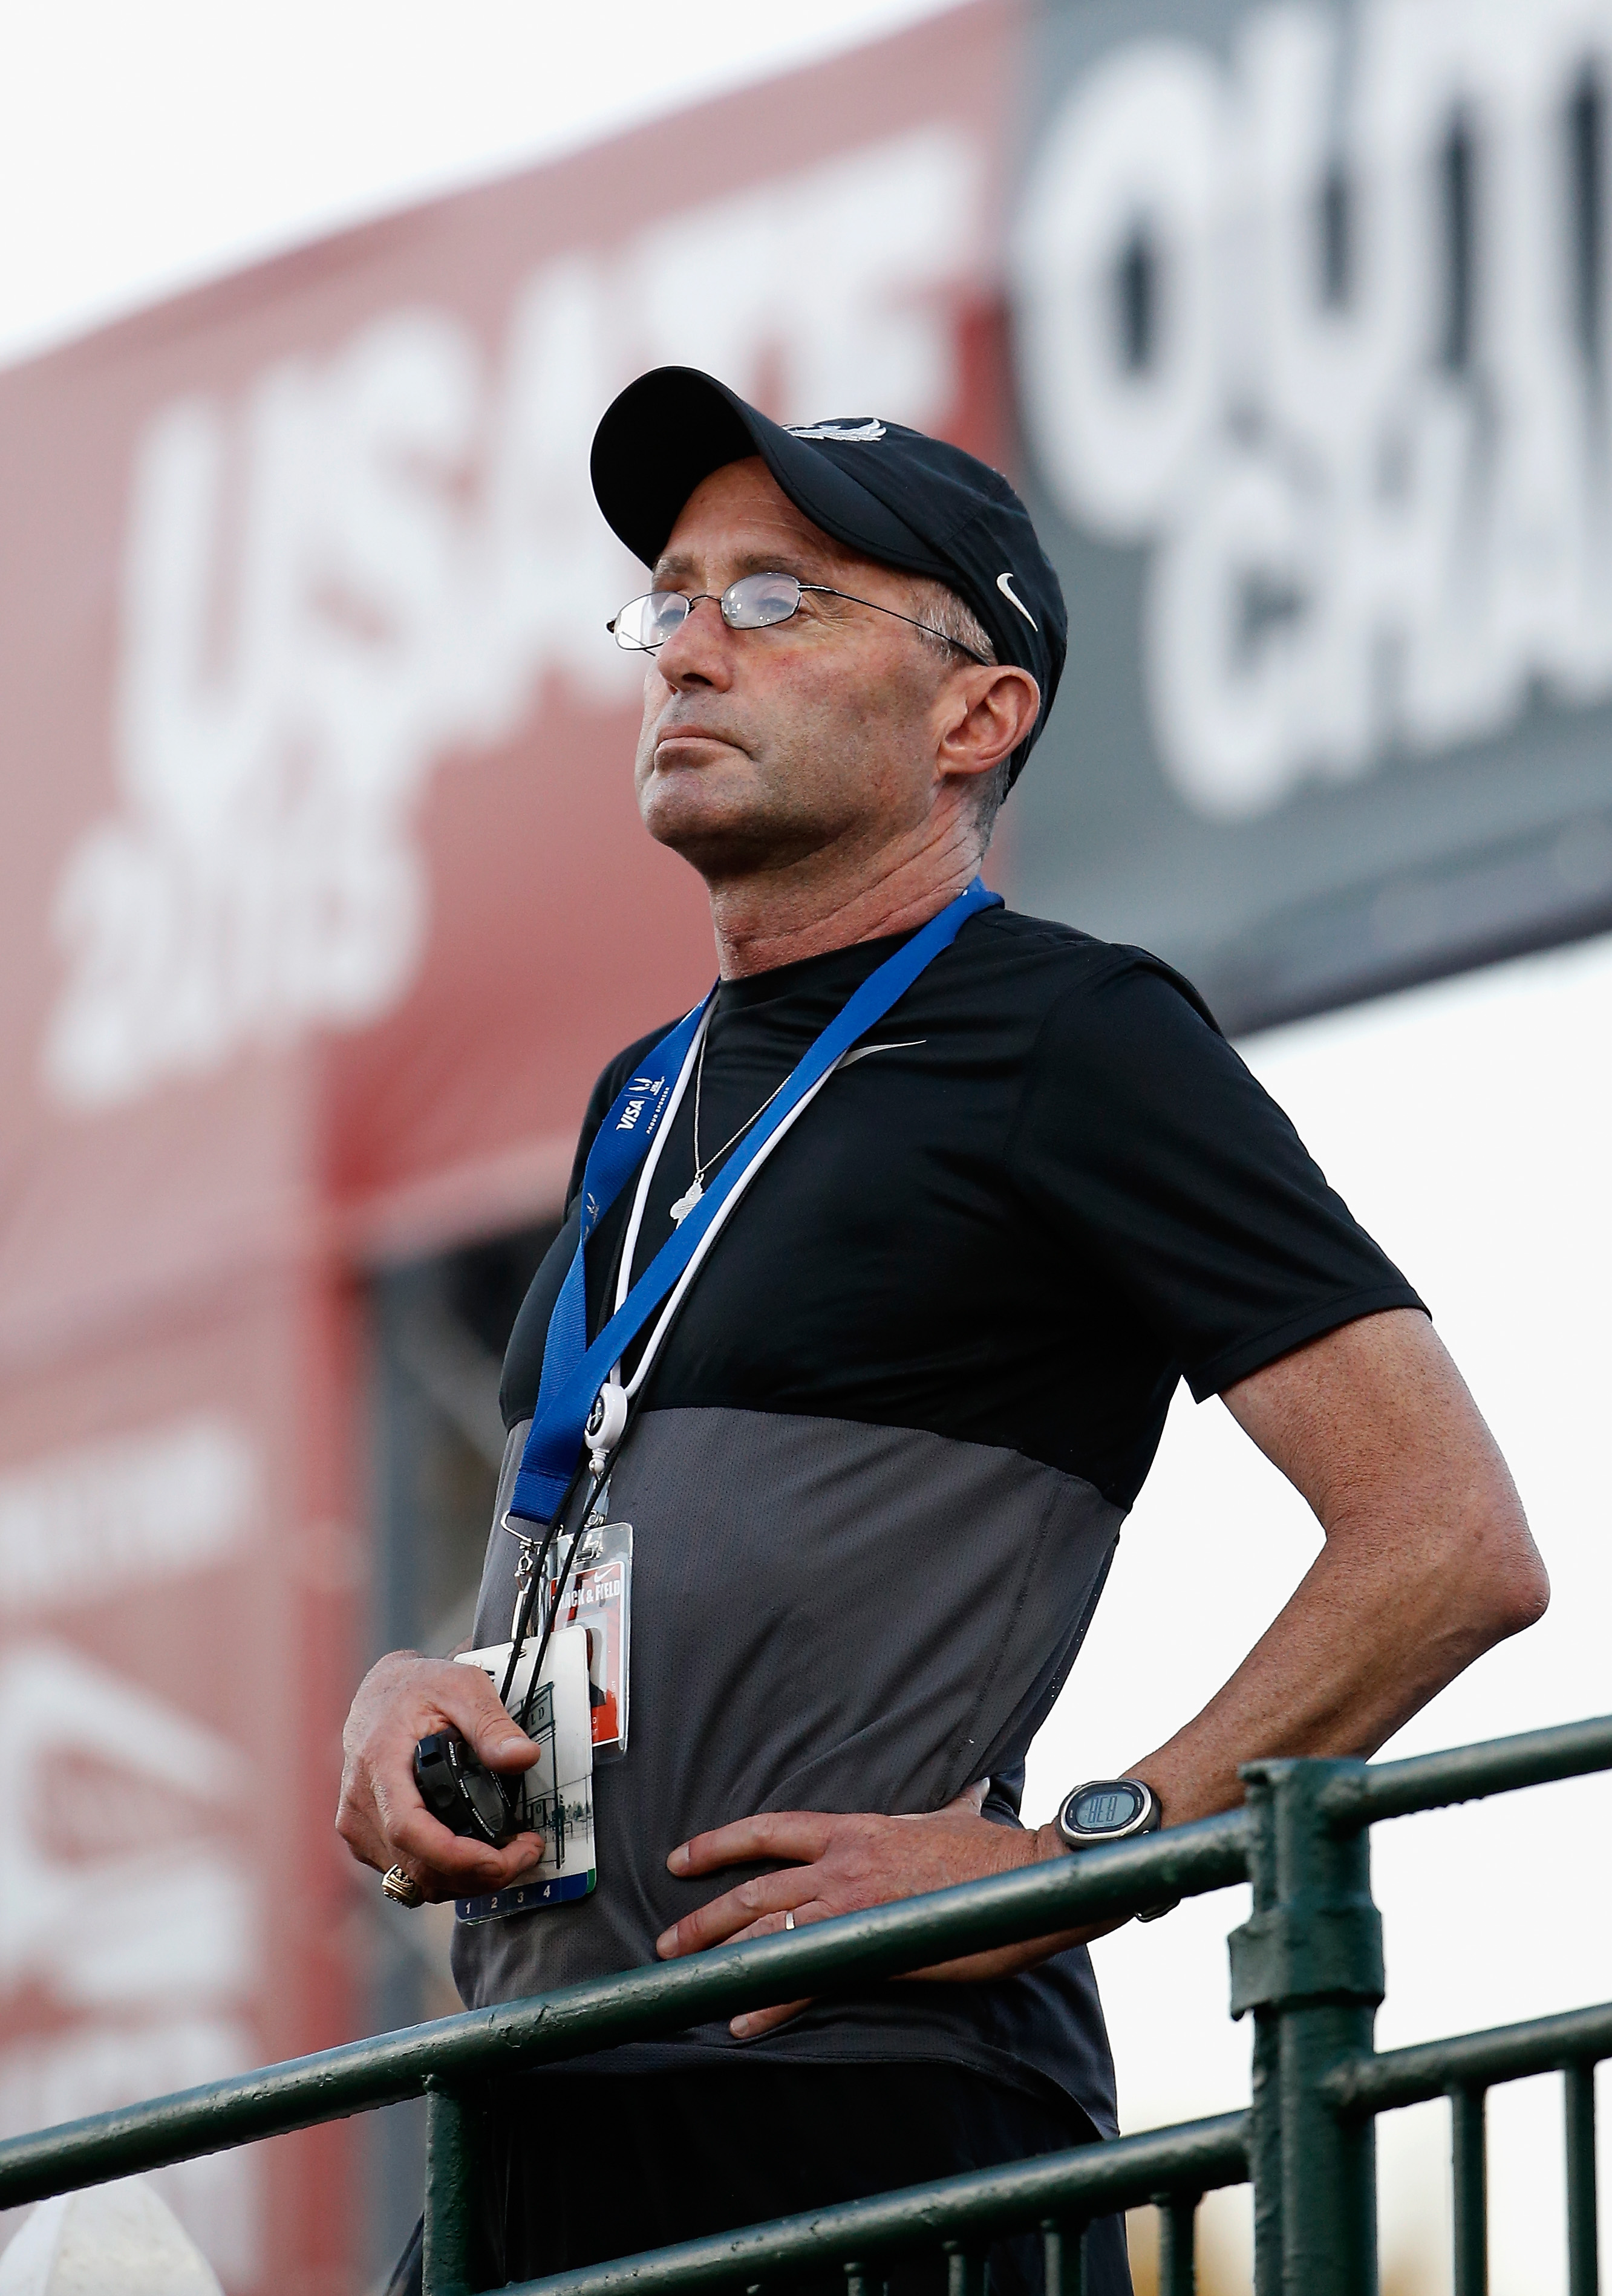 EUGENE, OR - JUNE 25: Nike Oregon Project coach Alberto Salazar watches the Men's 10,000 meter run during day one of the 2015 USA Outdoor Track & Field Championships at Hayward Field on June 25, 2015 in Eugene, Oregon. (Photo by Christian Petersen/Getty Images)